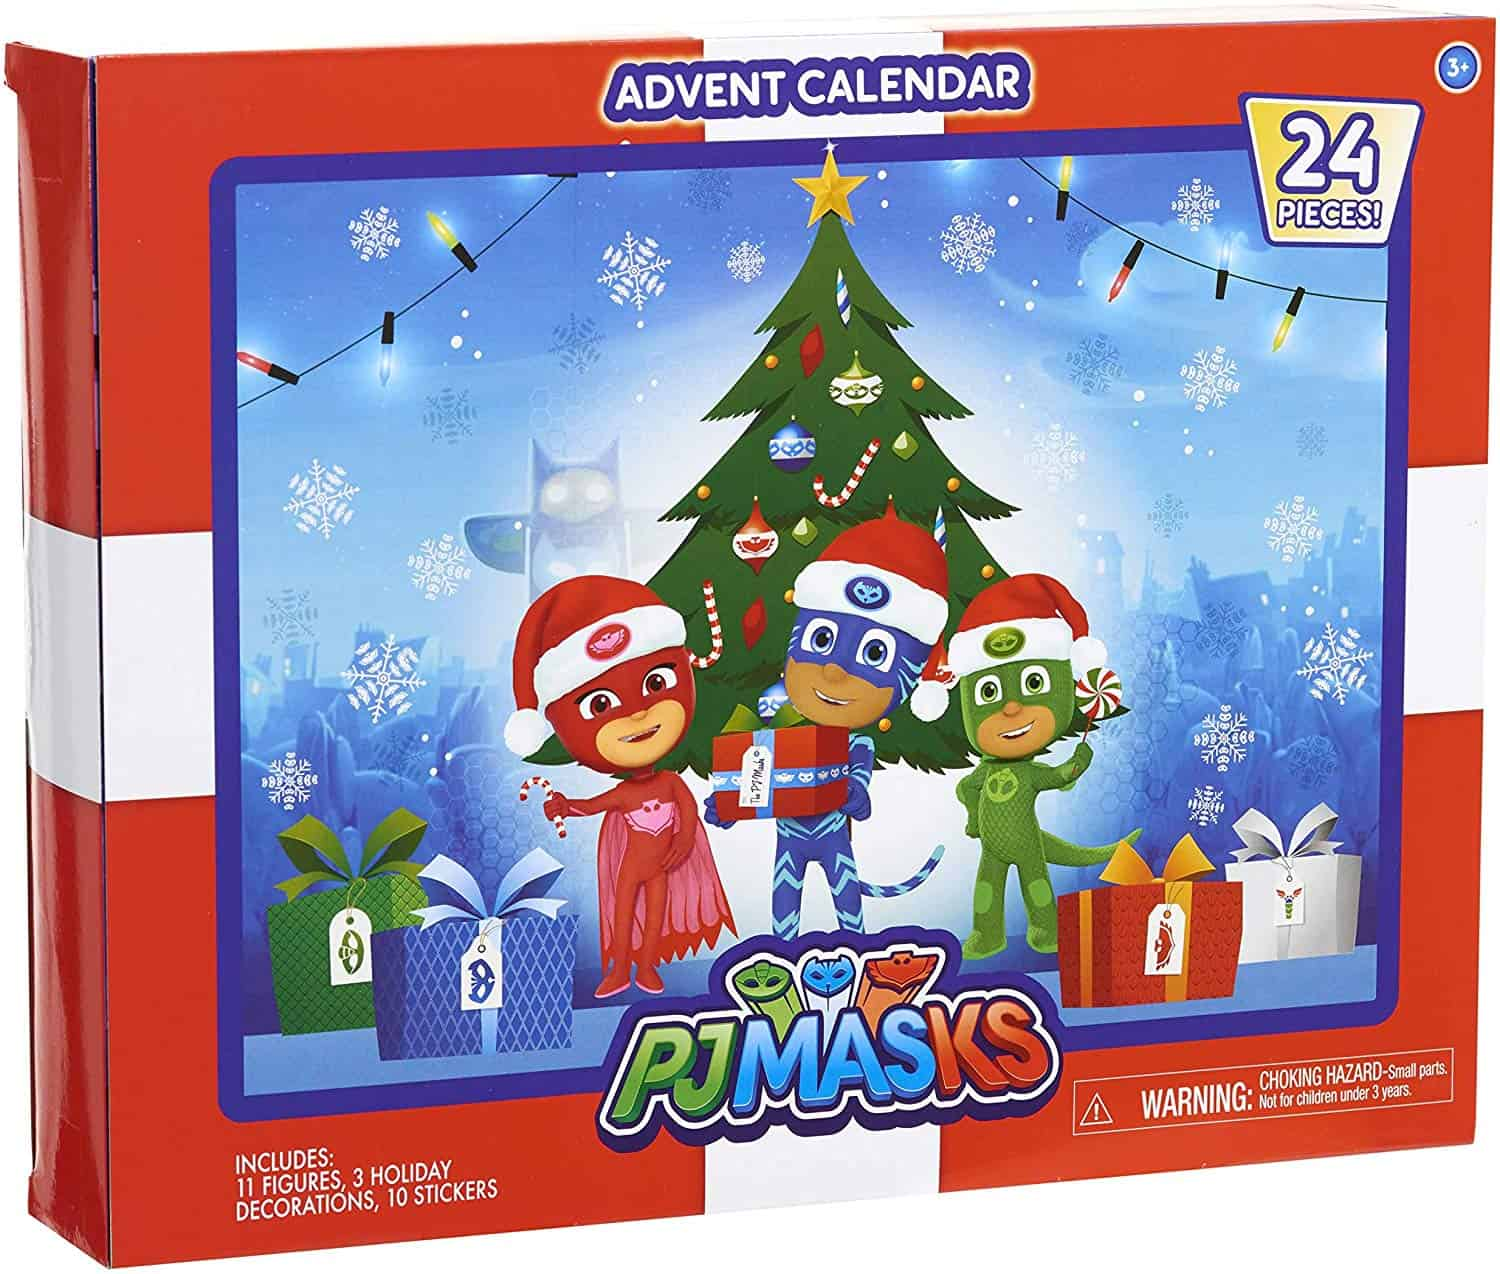 PJ Masks advent calendar on sale.